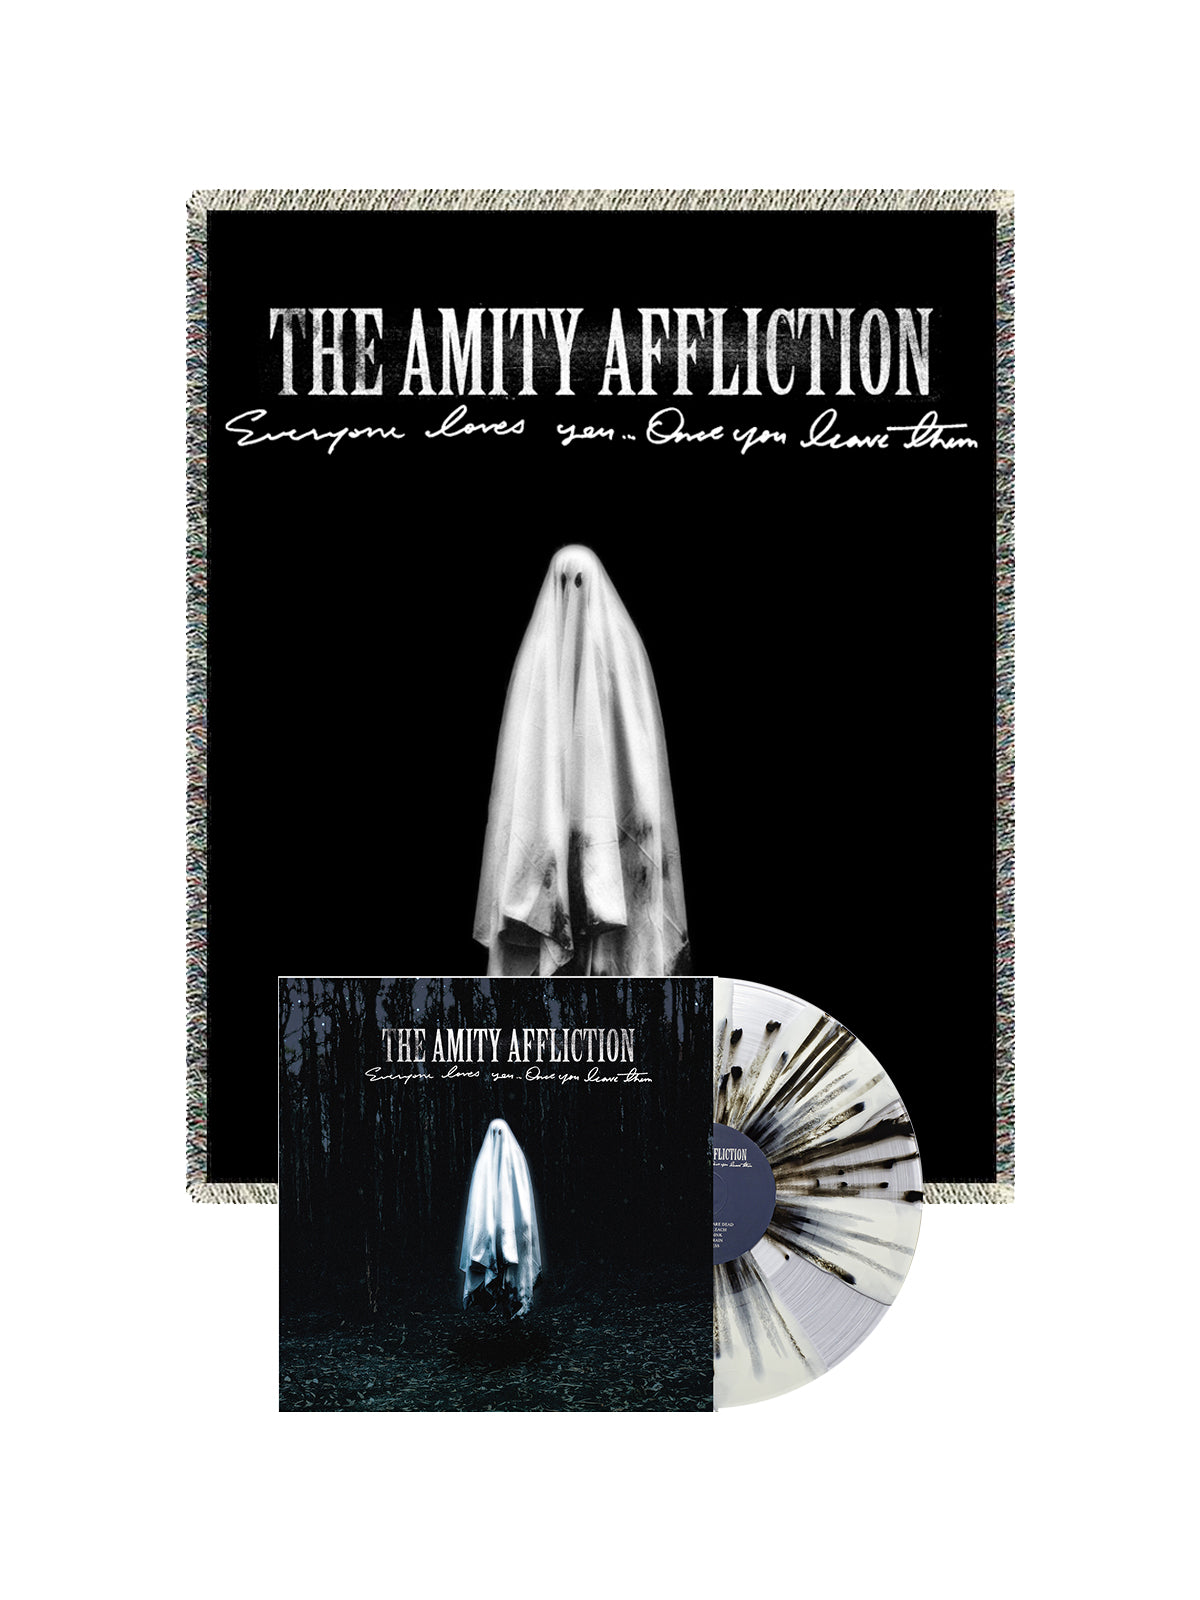 The Amity Affliction - LP + Blanket Bundle - SHIPS APRIL 12 - Merch Limited